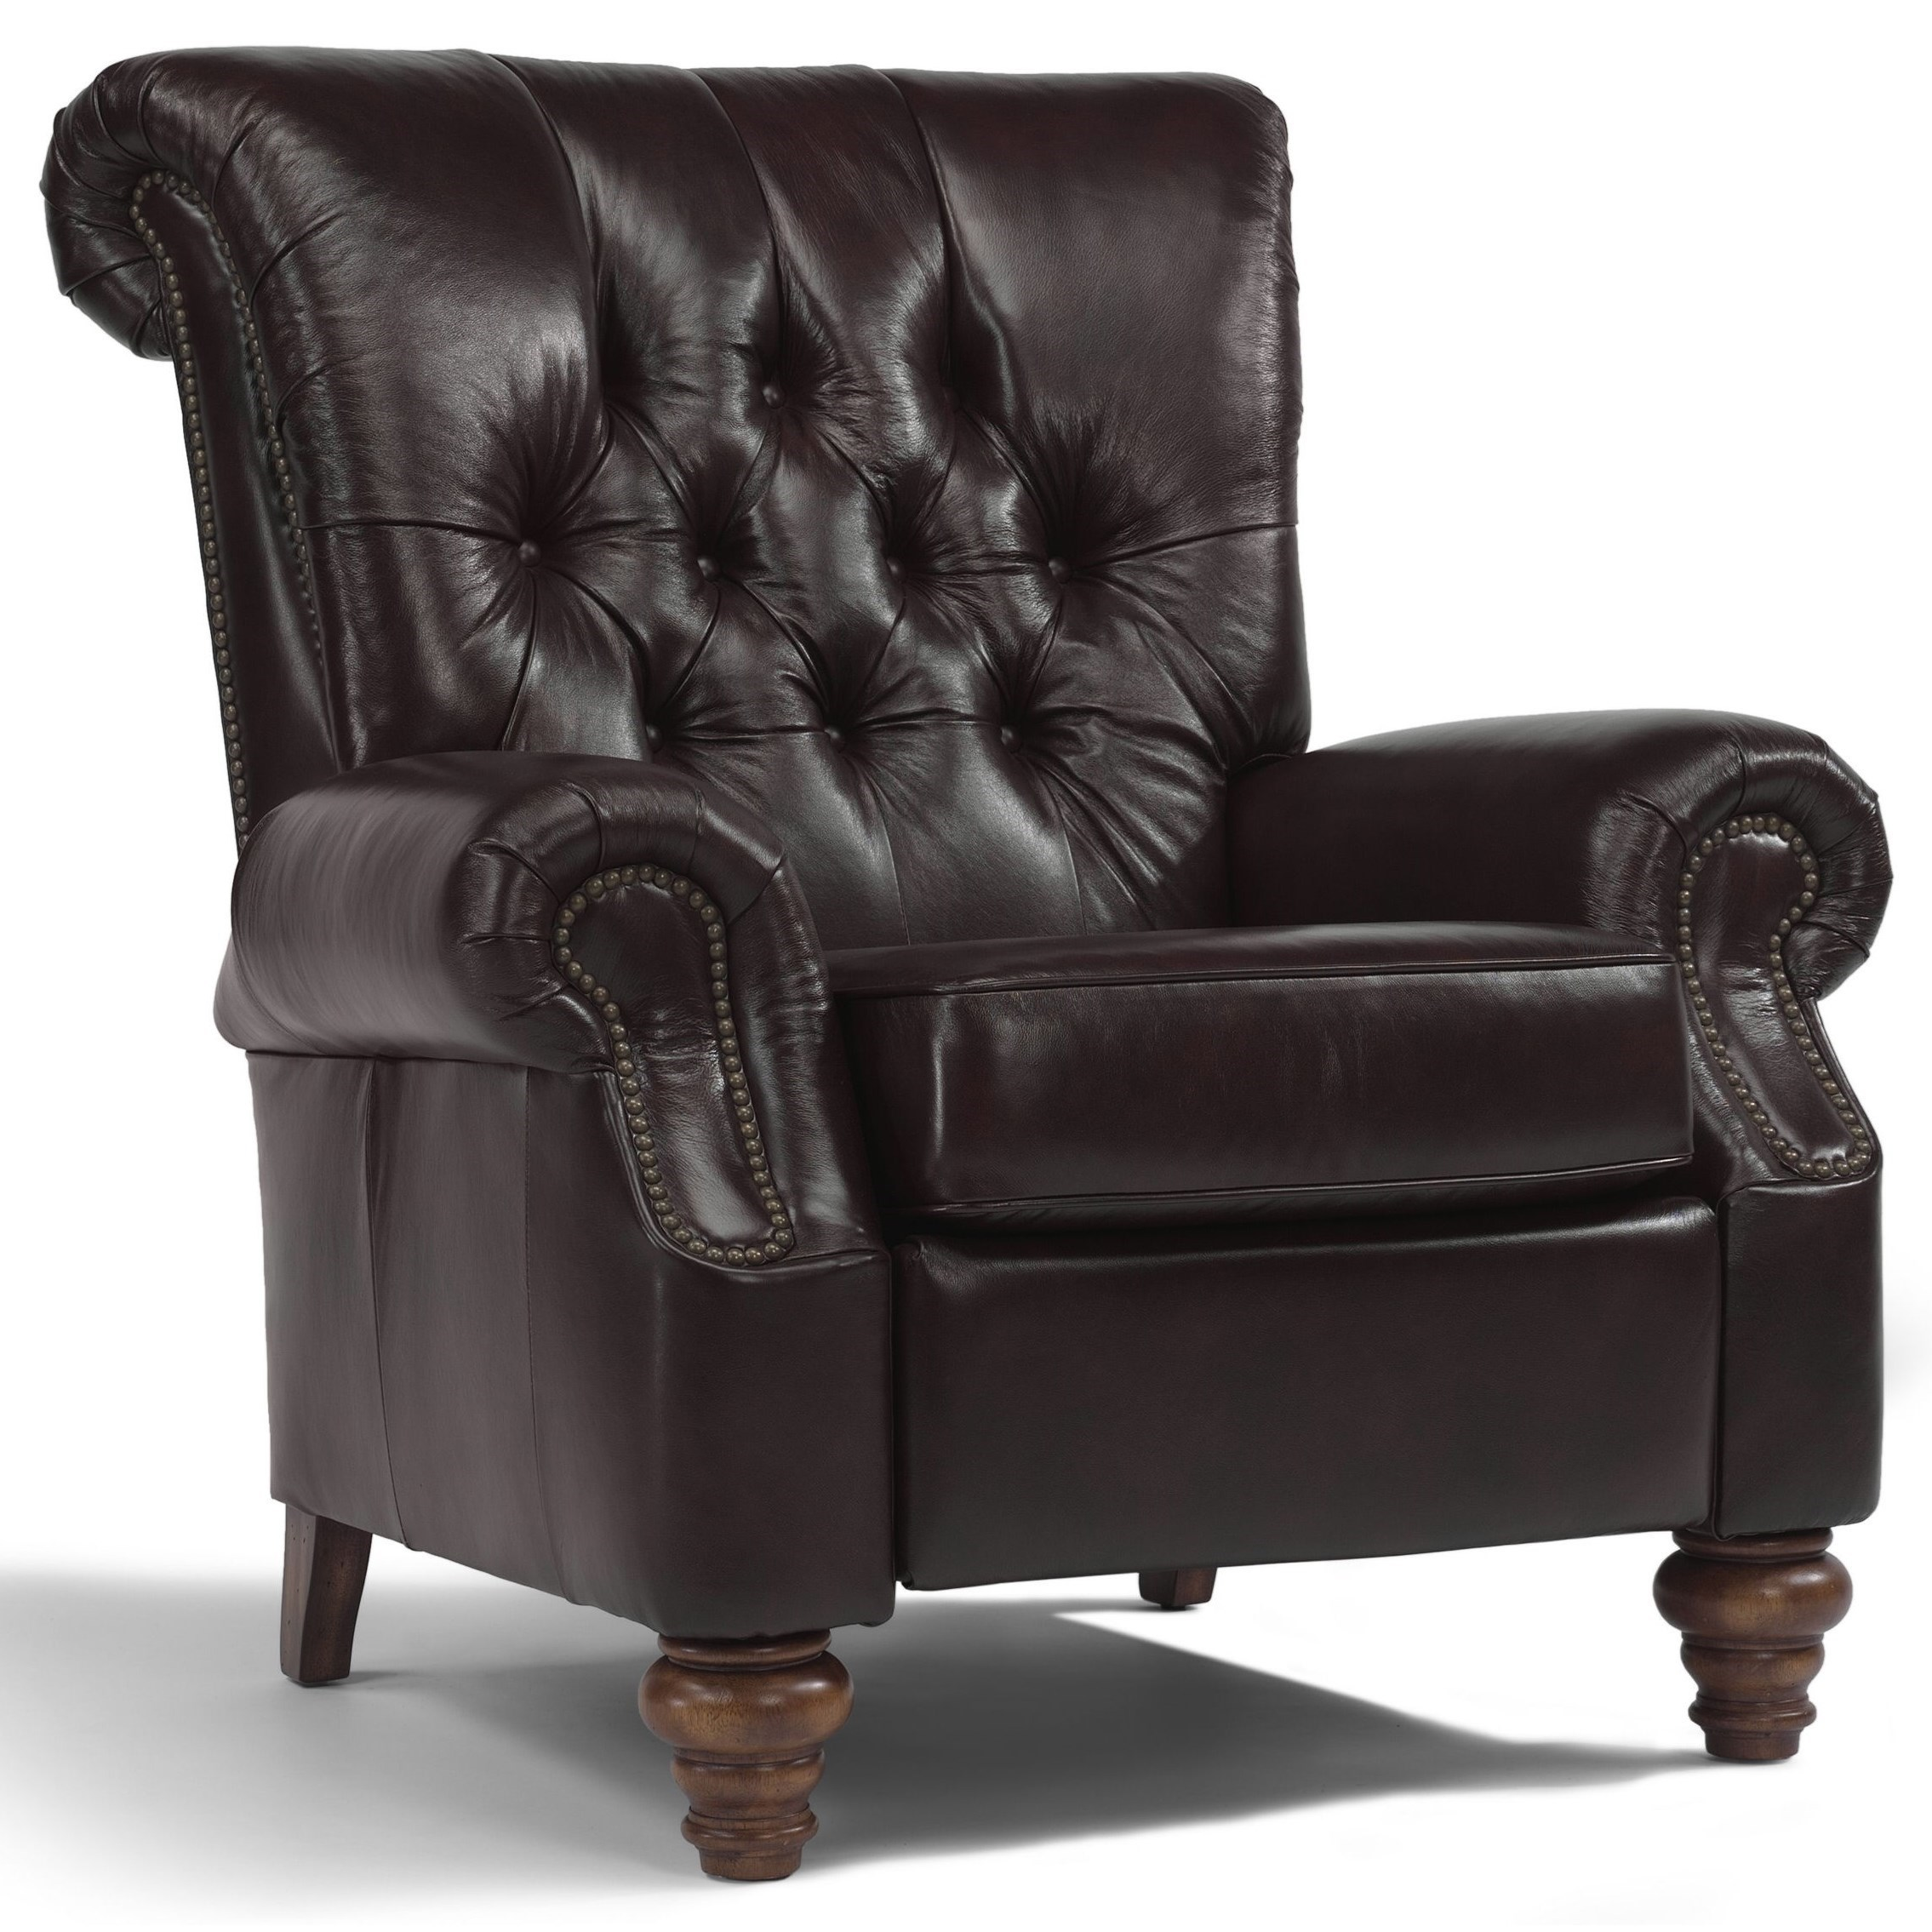 Accents Power High-Leg Recliner by Flexsteel at Williams & Kay